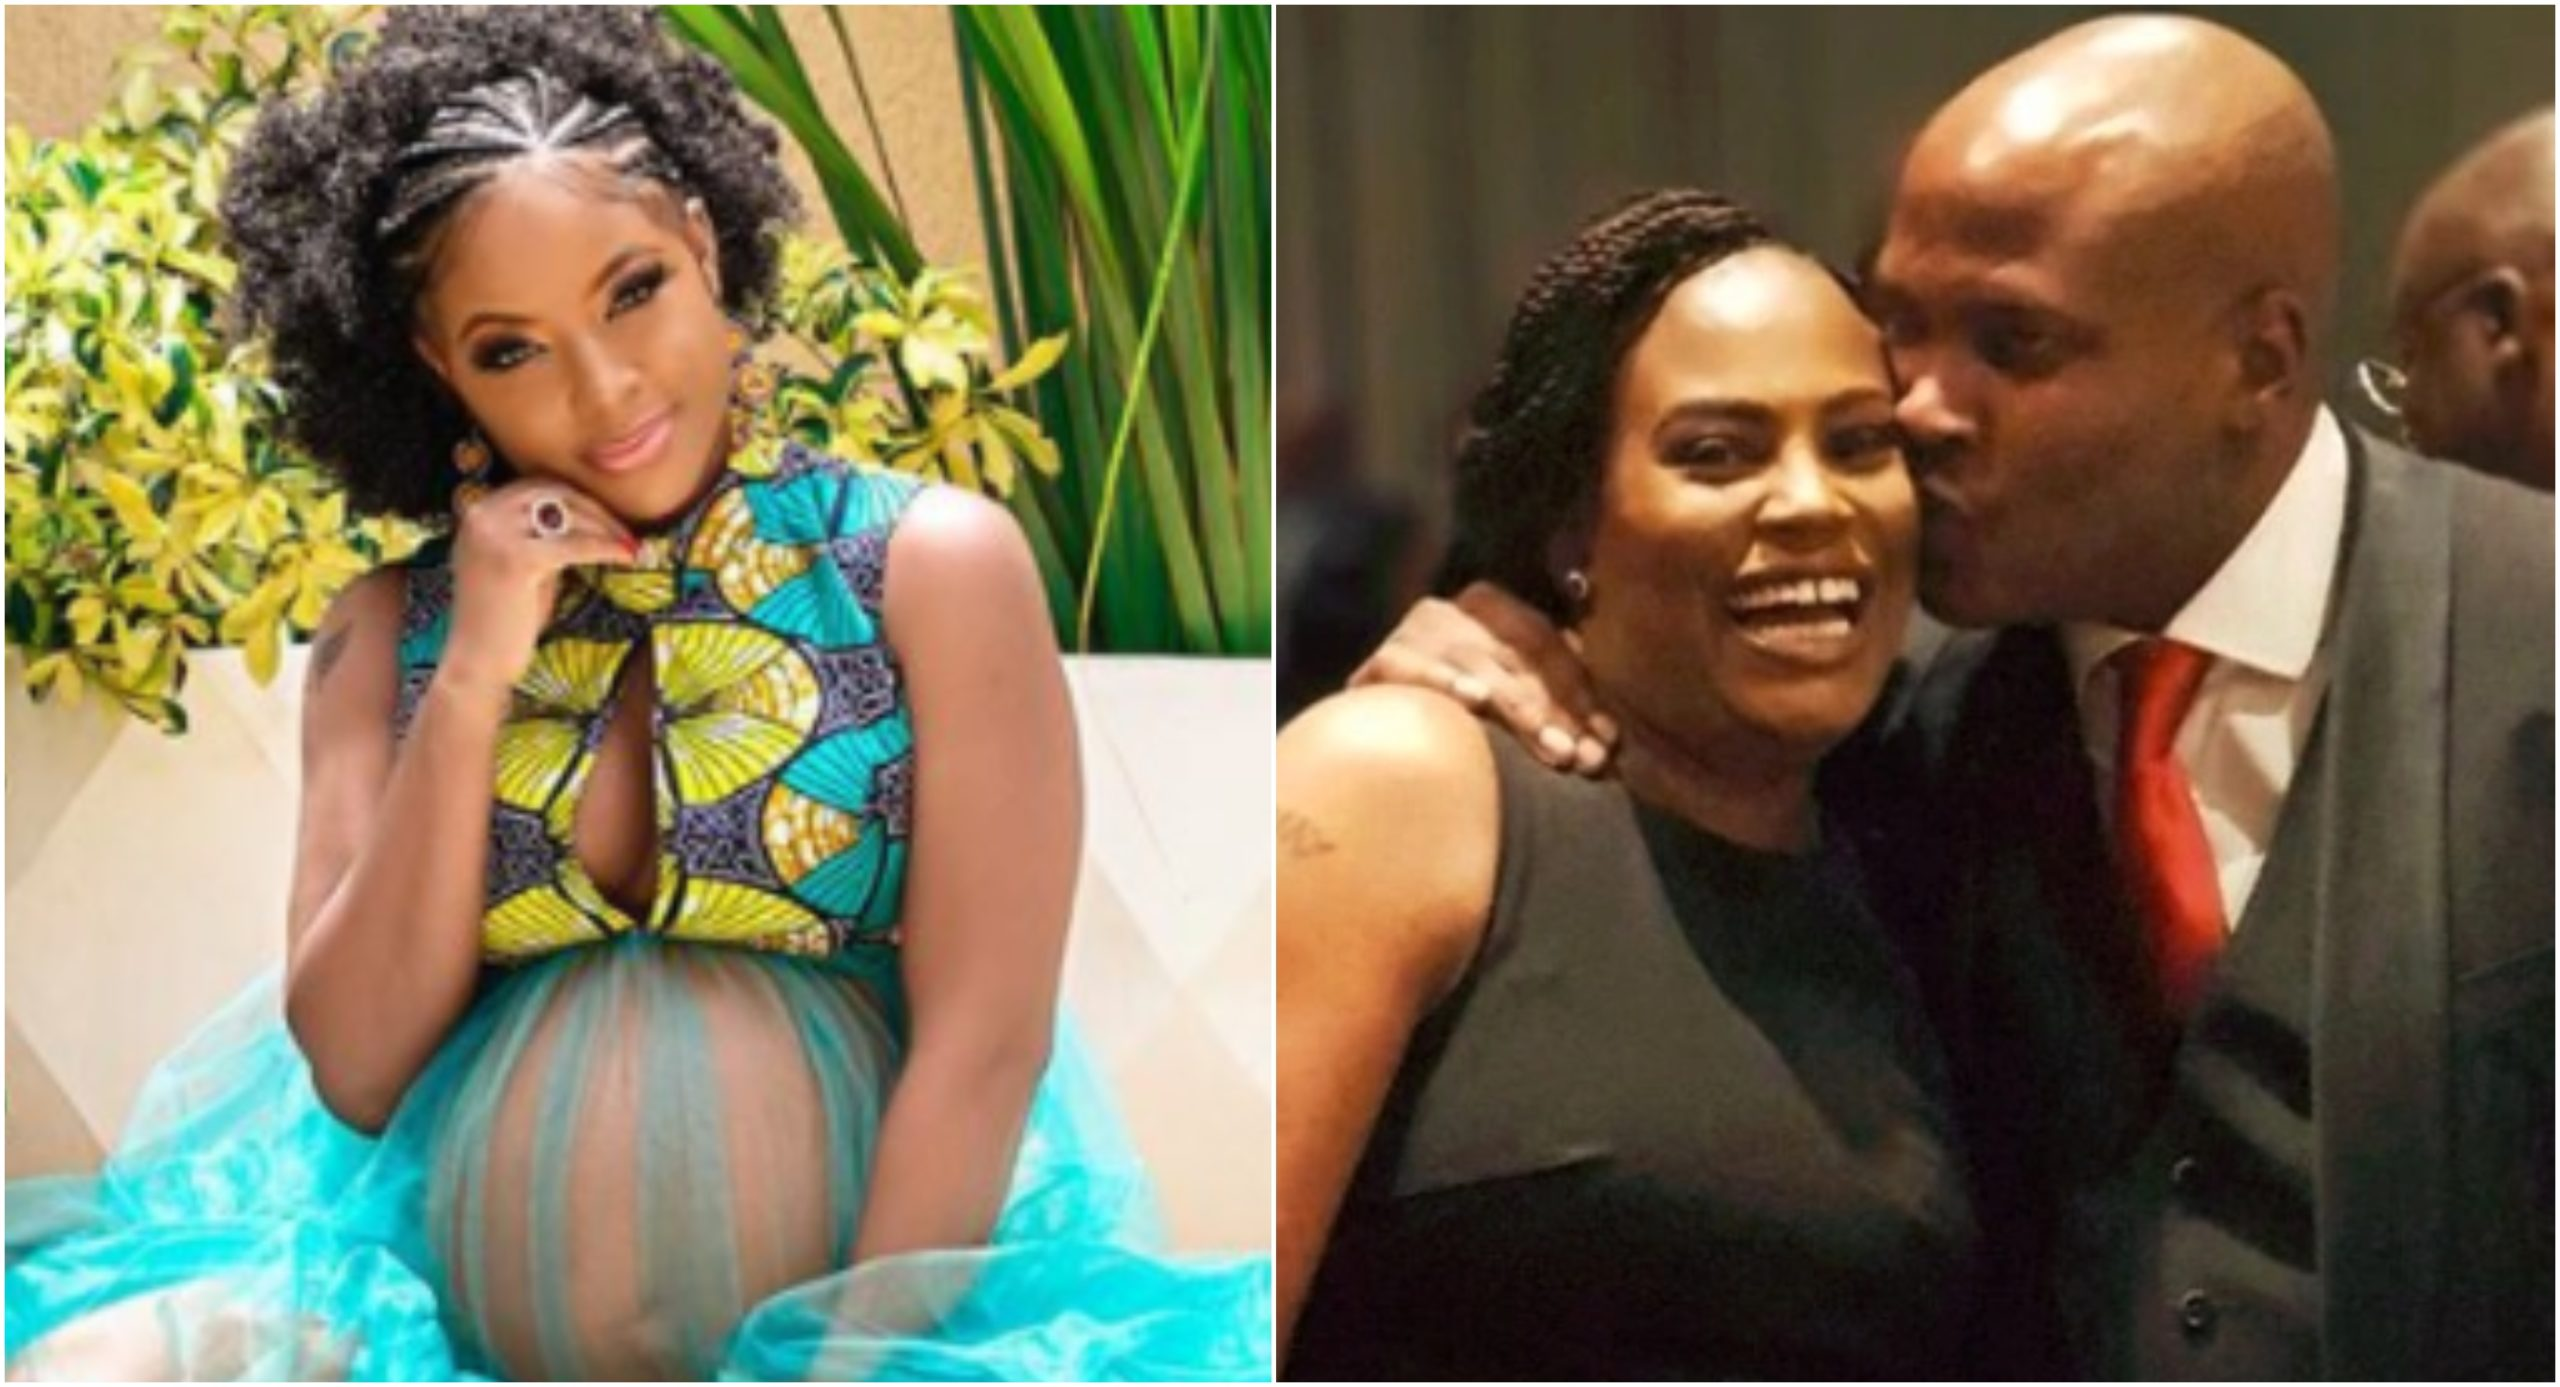 President Uhuru´s nephew and Lola Hannigan come out public on secret relationship that bore them a daughter (Video)